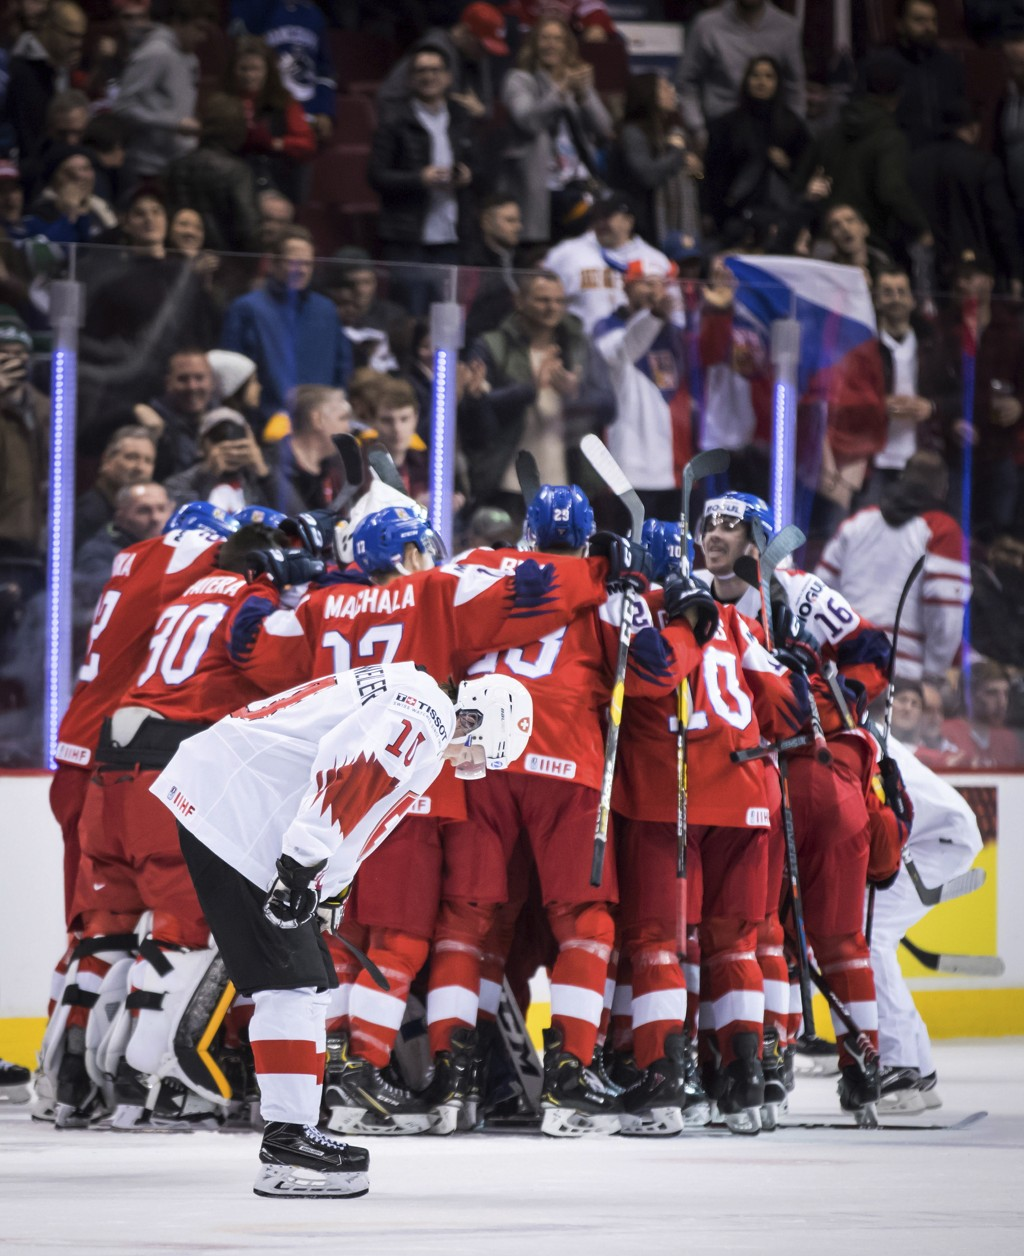 Switzerland's Yannick Bruschweiler (10) skates past as Czech Republic players celebrate their overtime win in a world junior men's hockey championship...